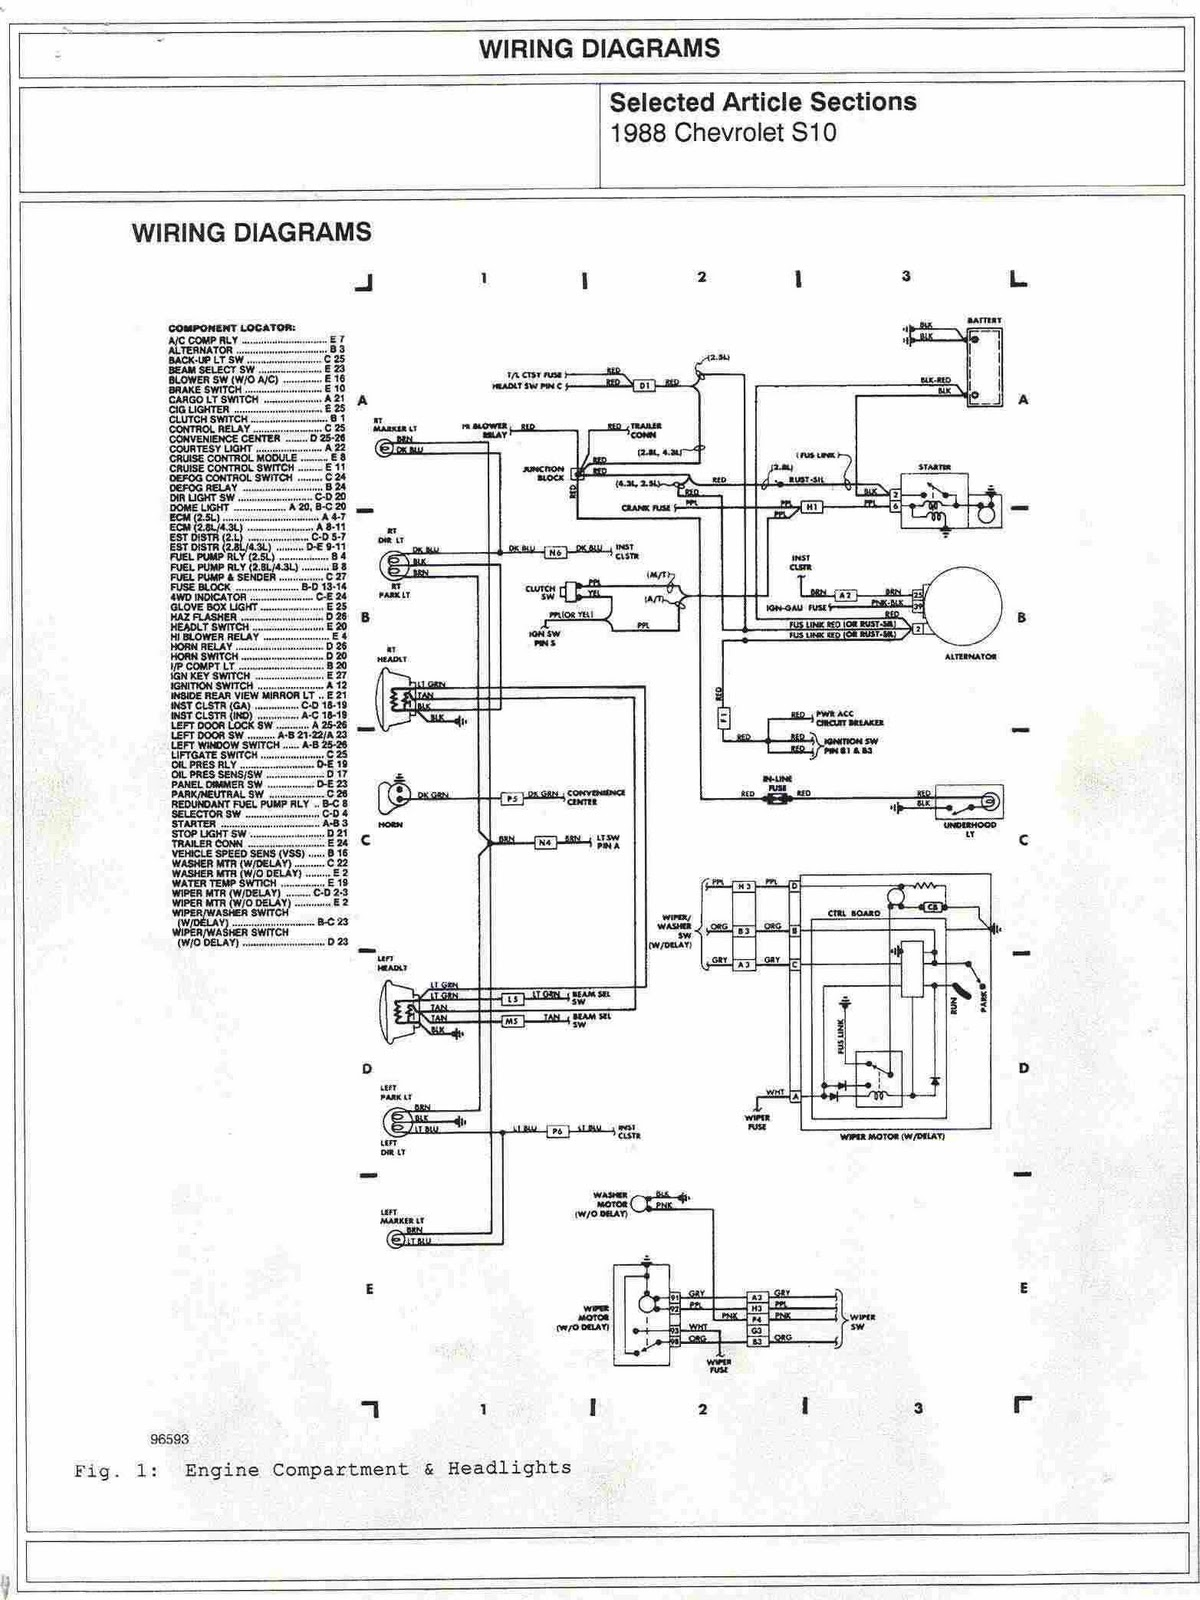 1988 s10 wiring diagram wiring diagram forward 1988 chevy s10 steering column wiring diagram 1988 s10 wiring diagram [ 1200 x 1600 Pixel ]